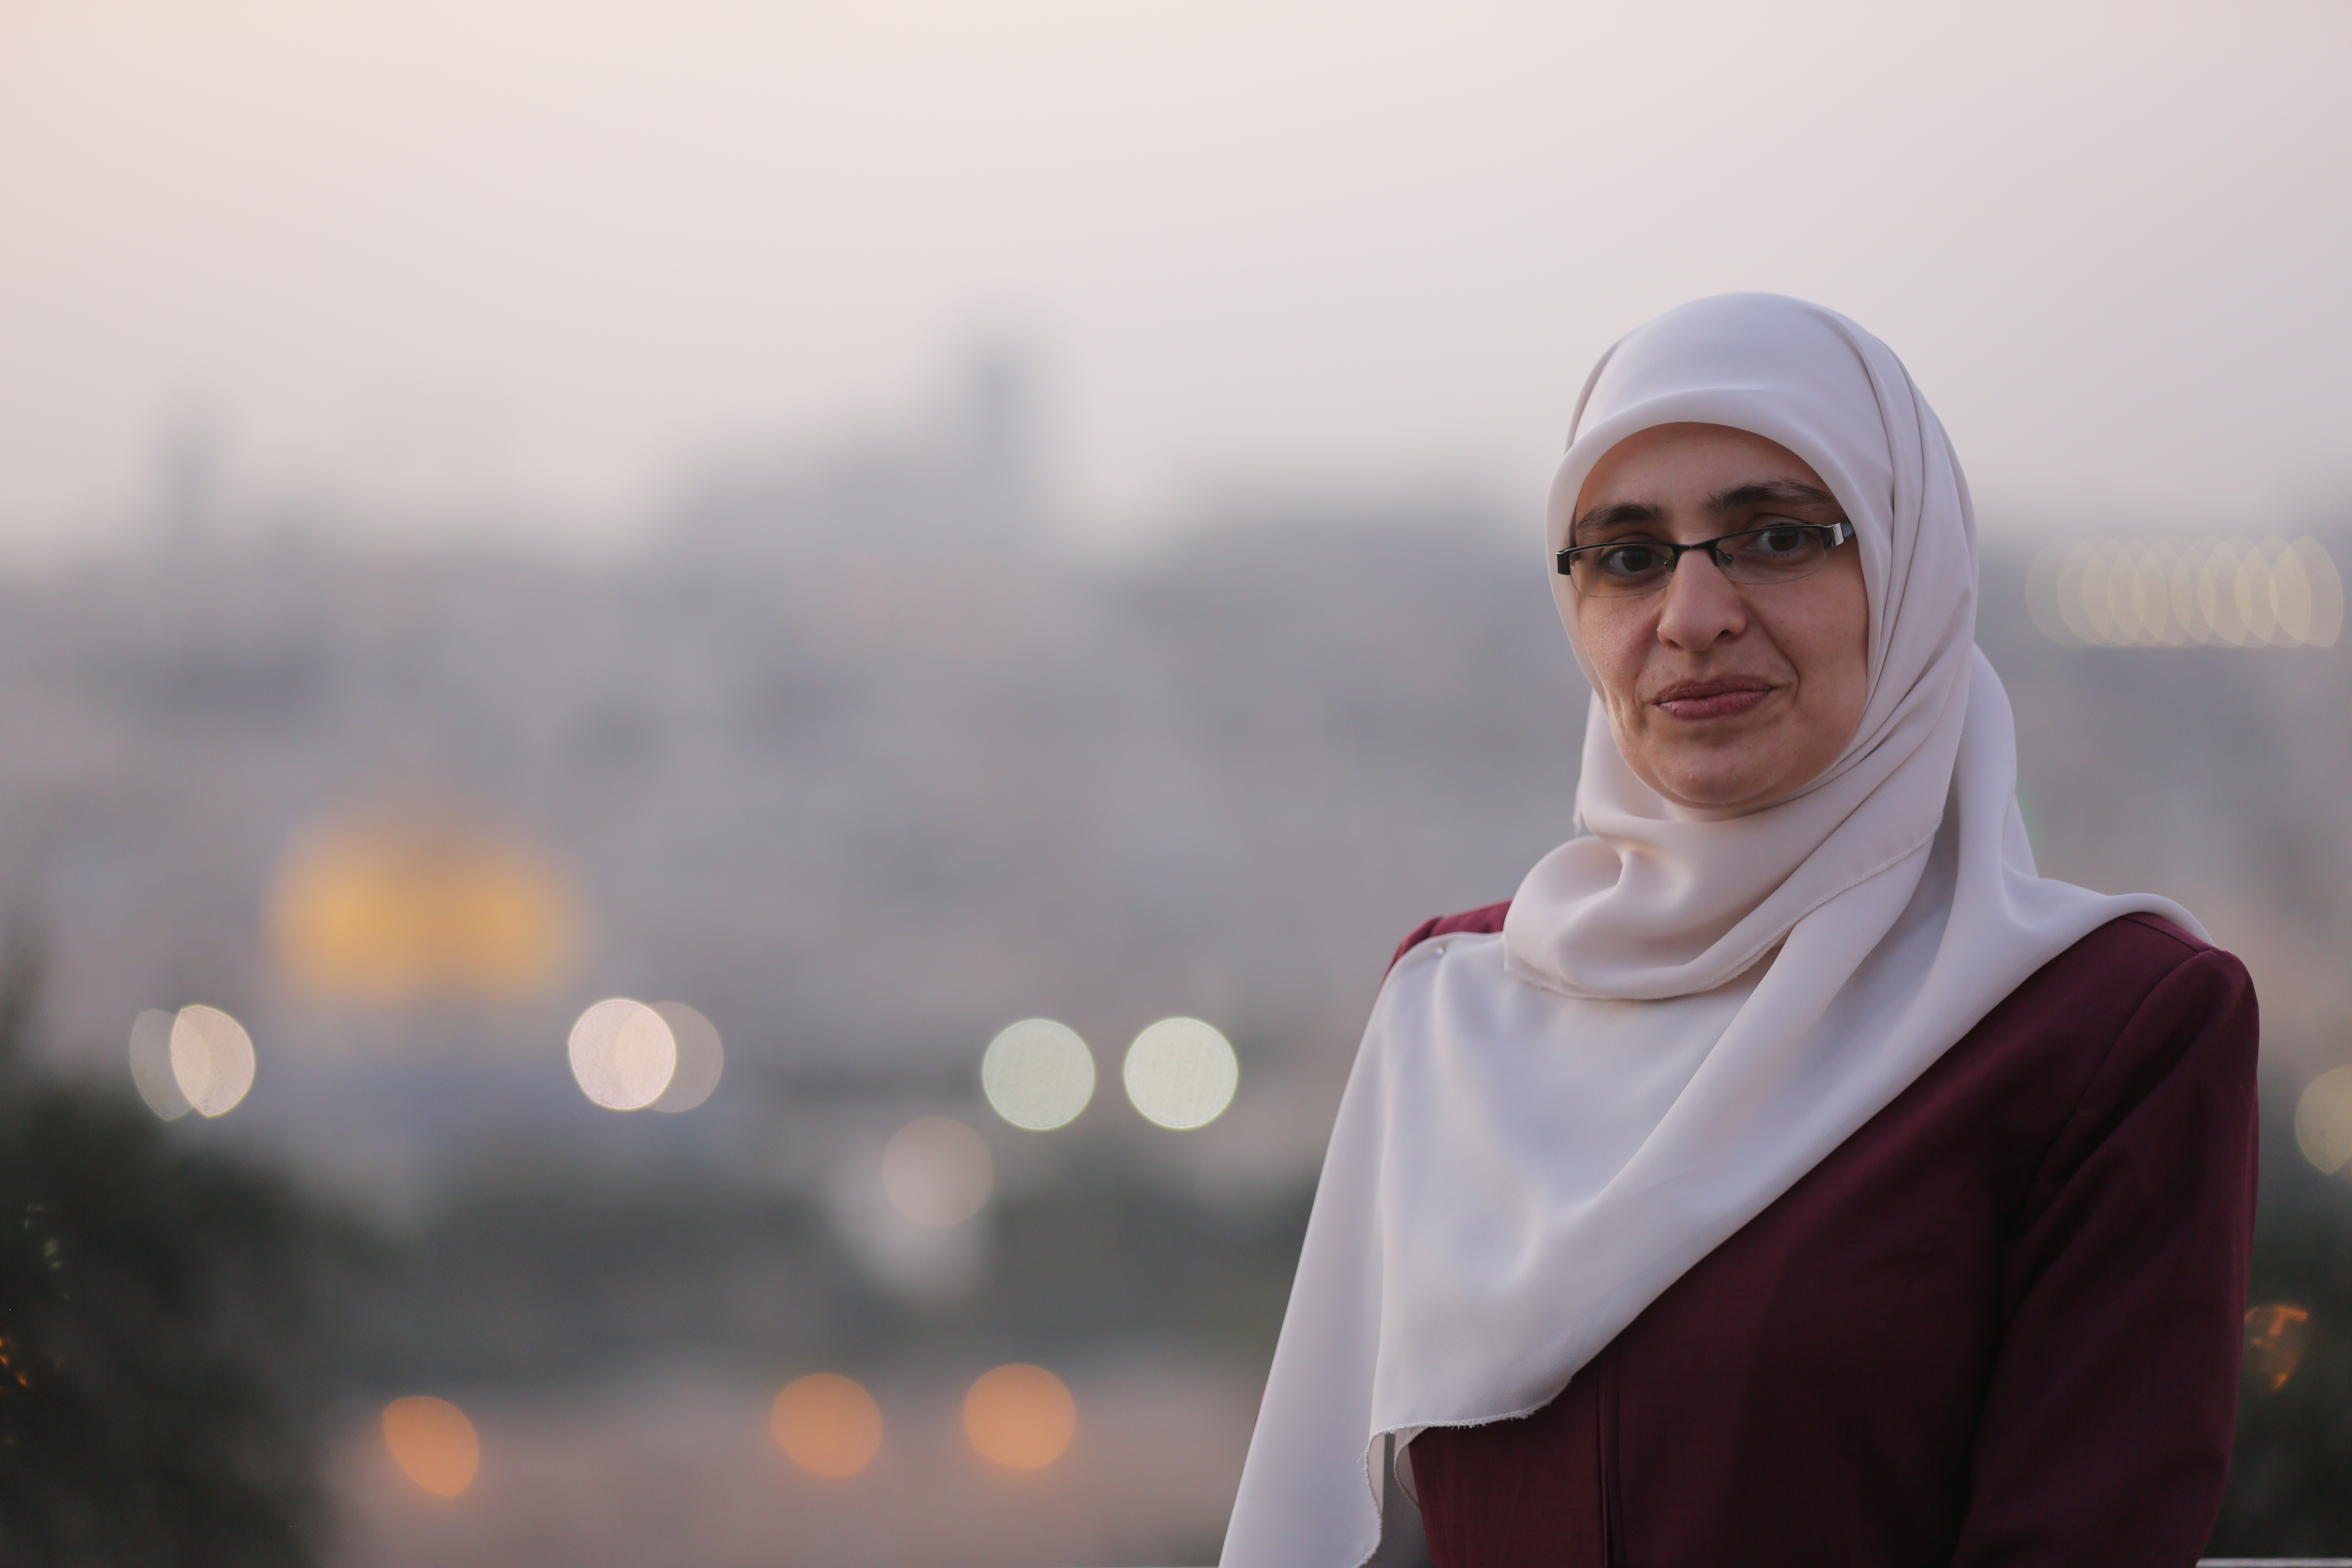 For Years, My Life Was Al-Aqsa. Israel Took That from Me